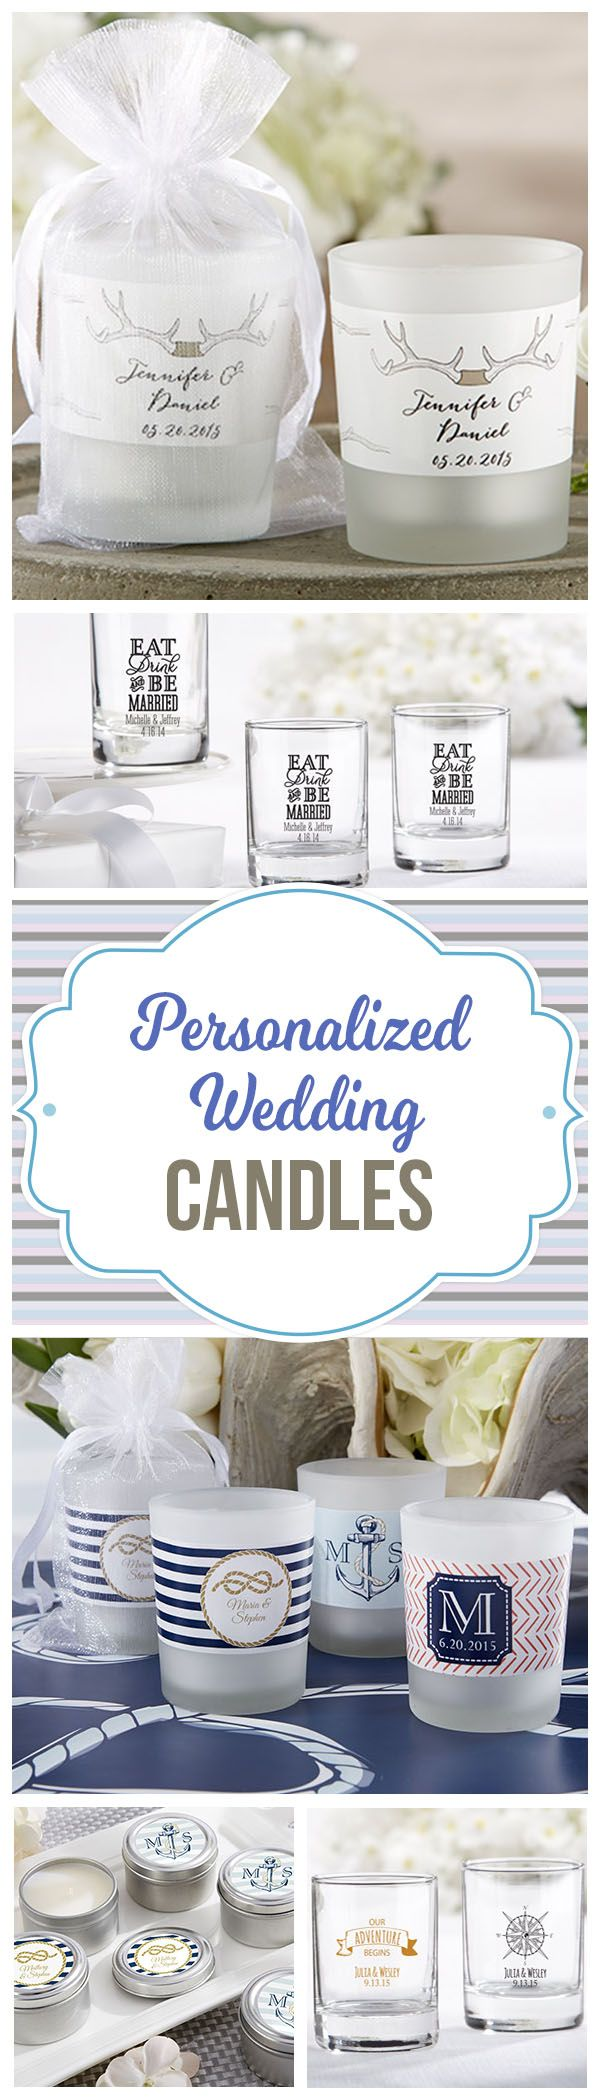 A creative way to add your own elements to gift tables or even as Wedding Favors:  Personalized Wedding Candles and Candle Holders.  We carry over 100+ designs